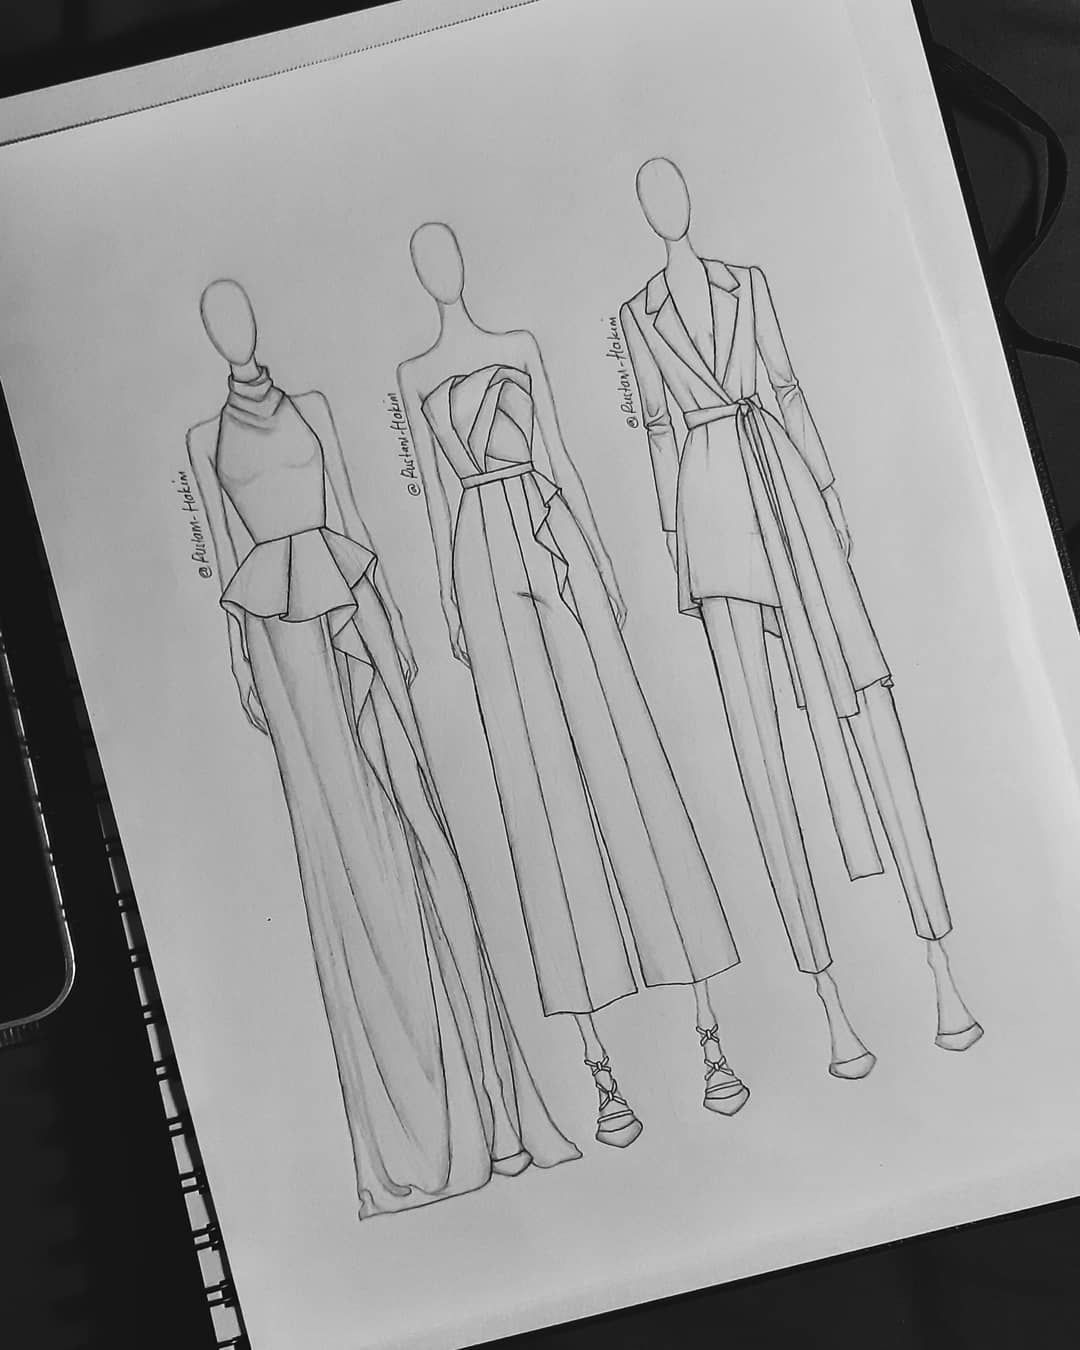 """Kim on Instagram: """"These designs inspire by Azzi & Osta ready to wear ss19 collections... ... #sketch #illustration #illustrator #fashion #design #readytowear…"""""""